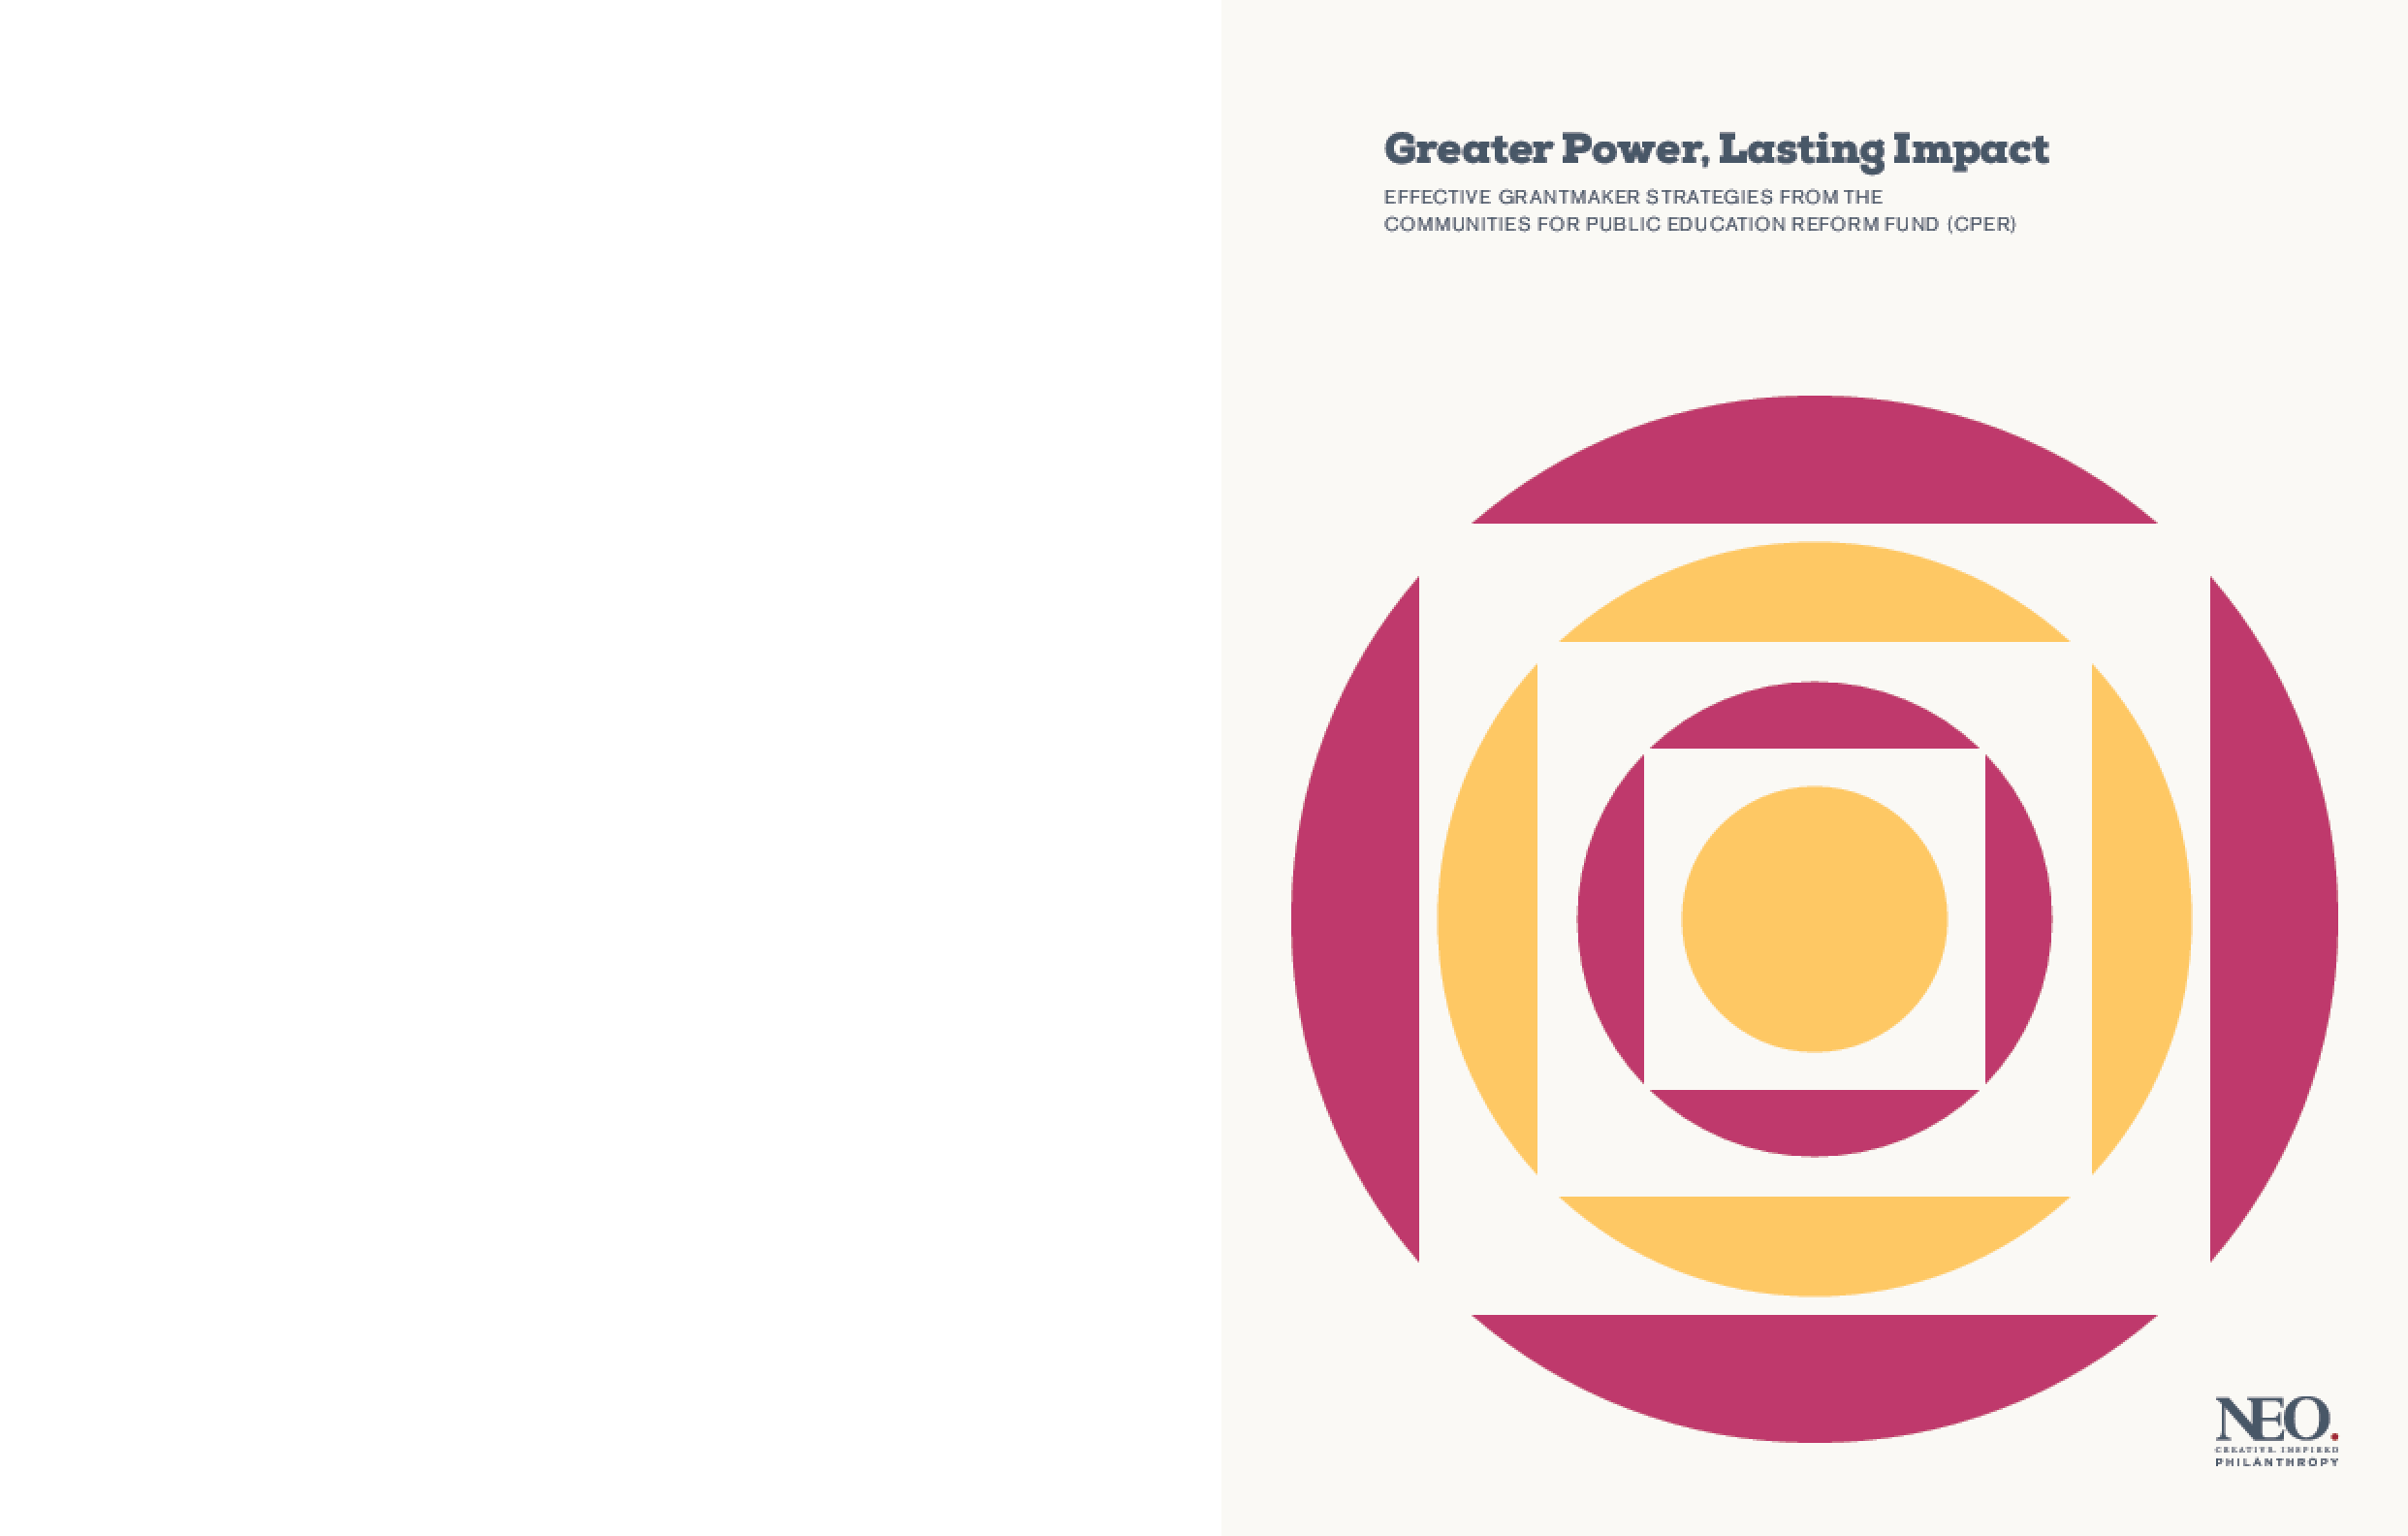 Greater Power, Lasting Impact: Effective Grantmaker Strategies from the Communities for Public Education Reform Fund (CPER)